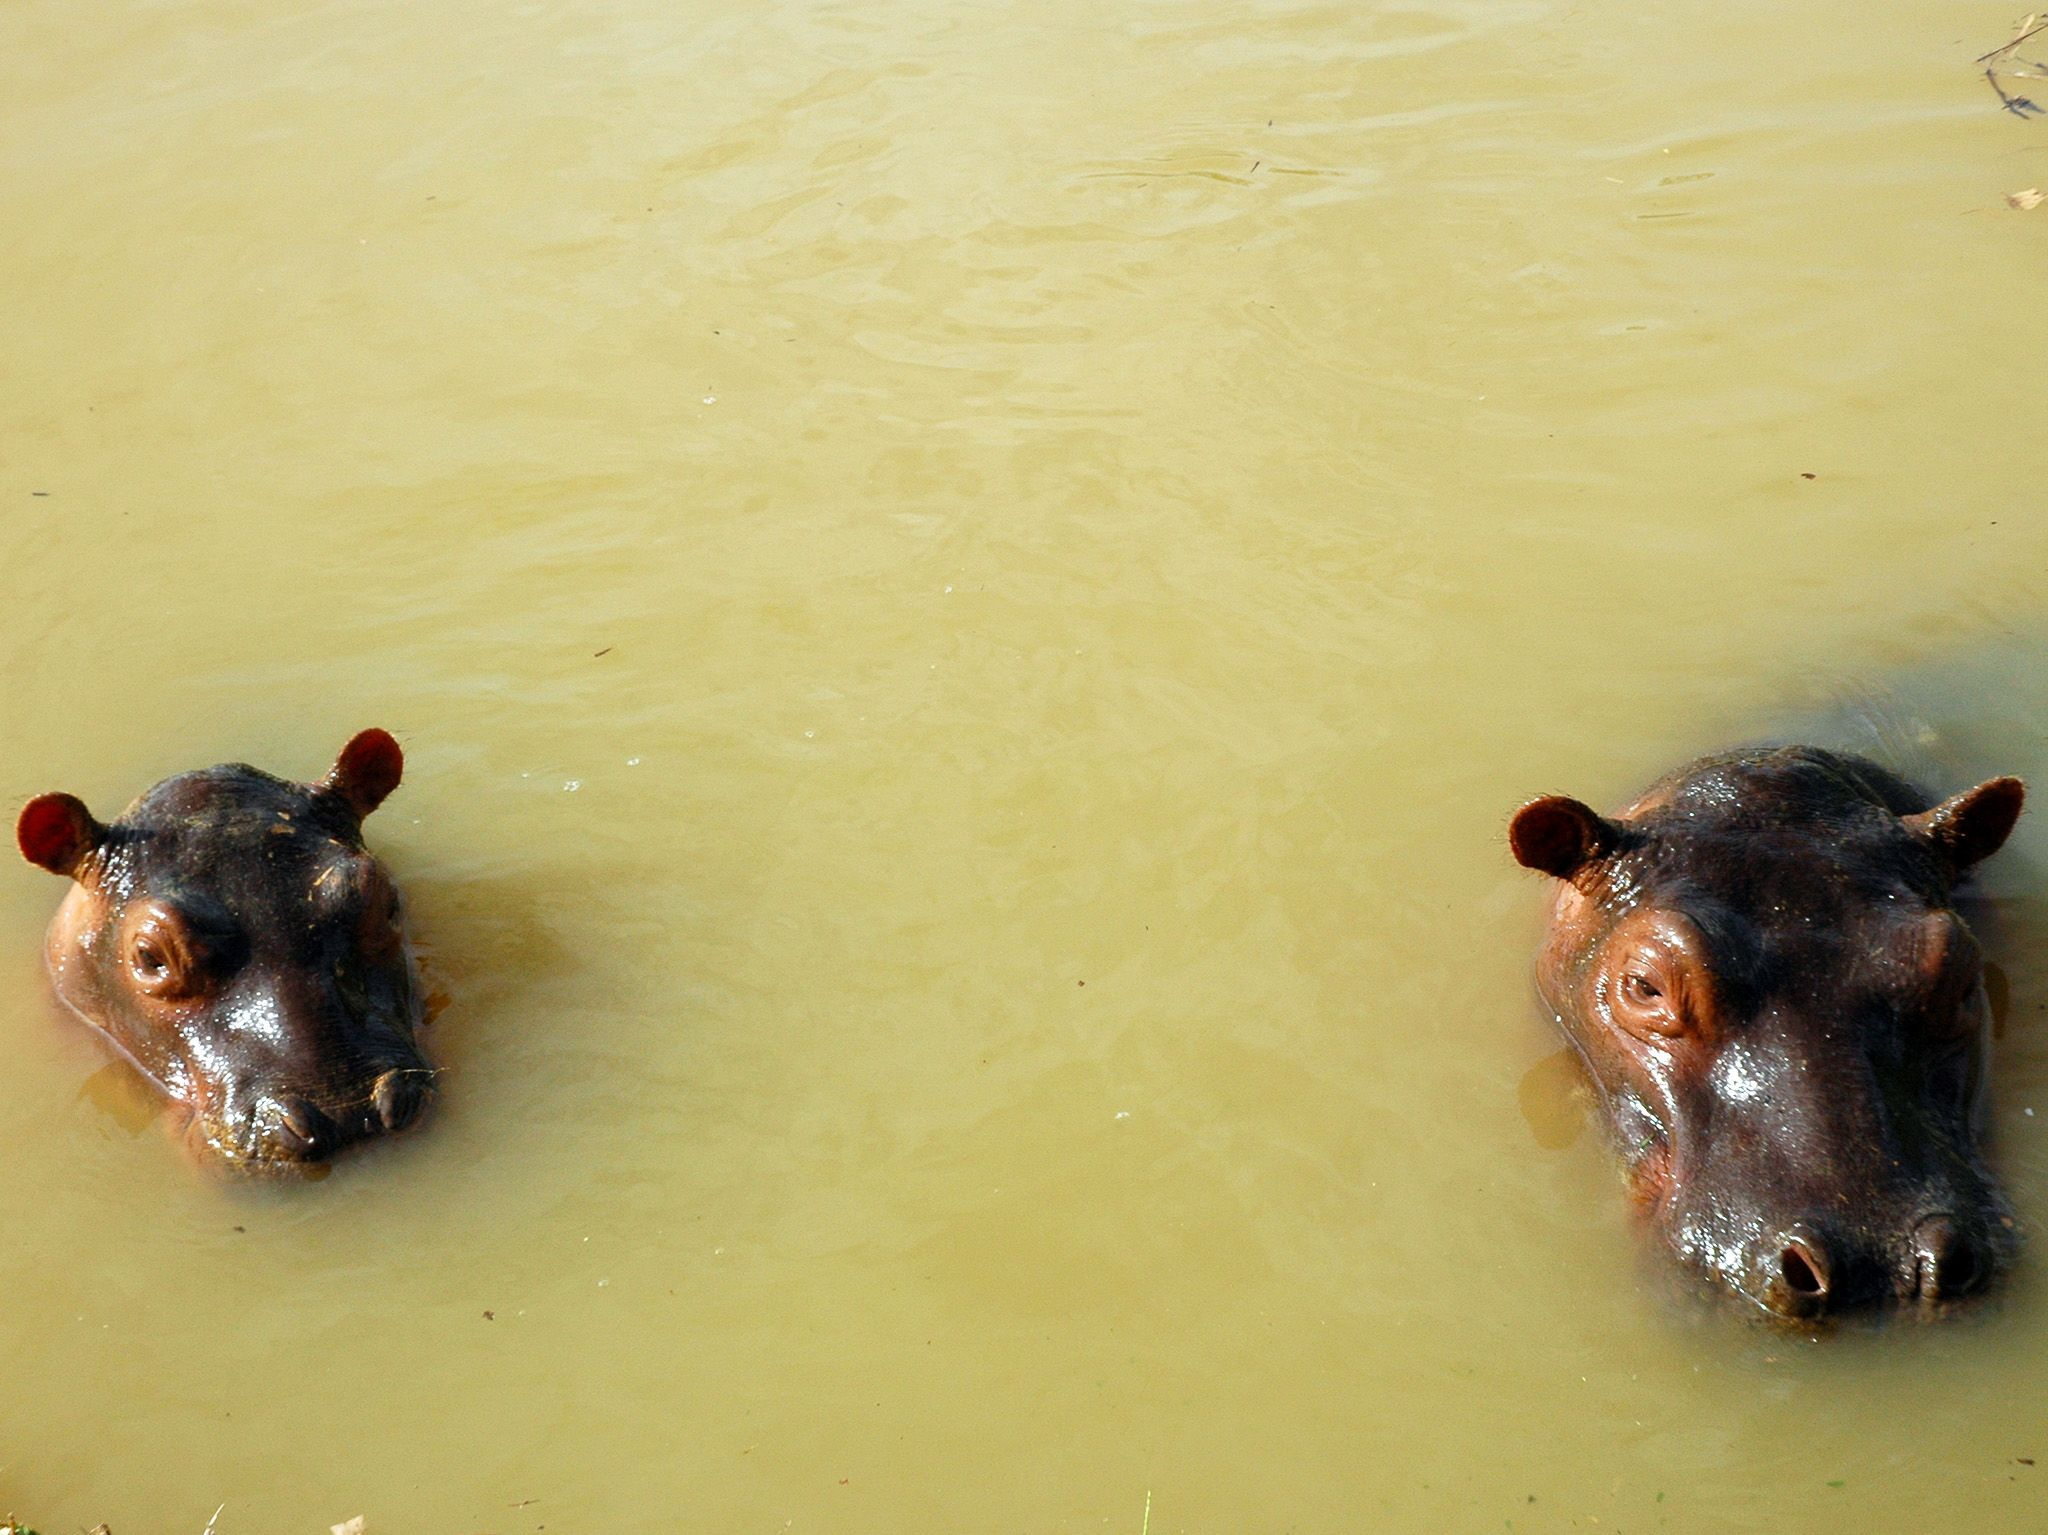 Puerto Truinfo, Colombia: Two baby hippos in a pond, poking their heads out of the water. This... [Foto del giorno - August 2018]